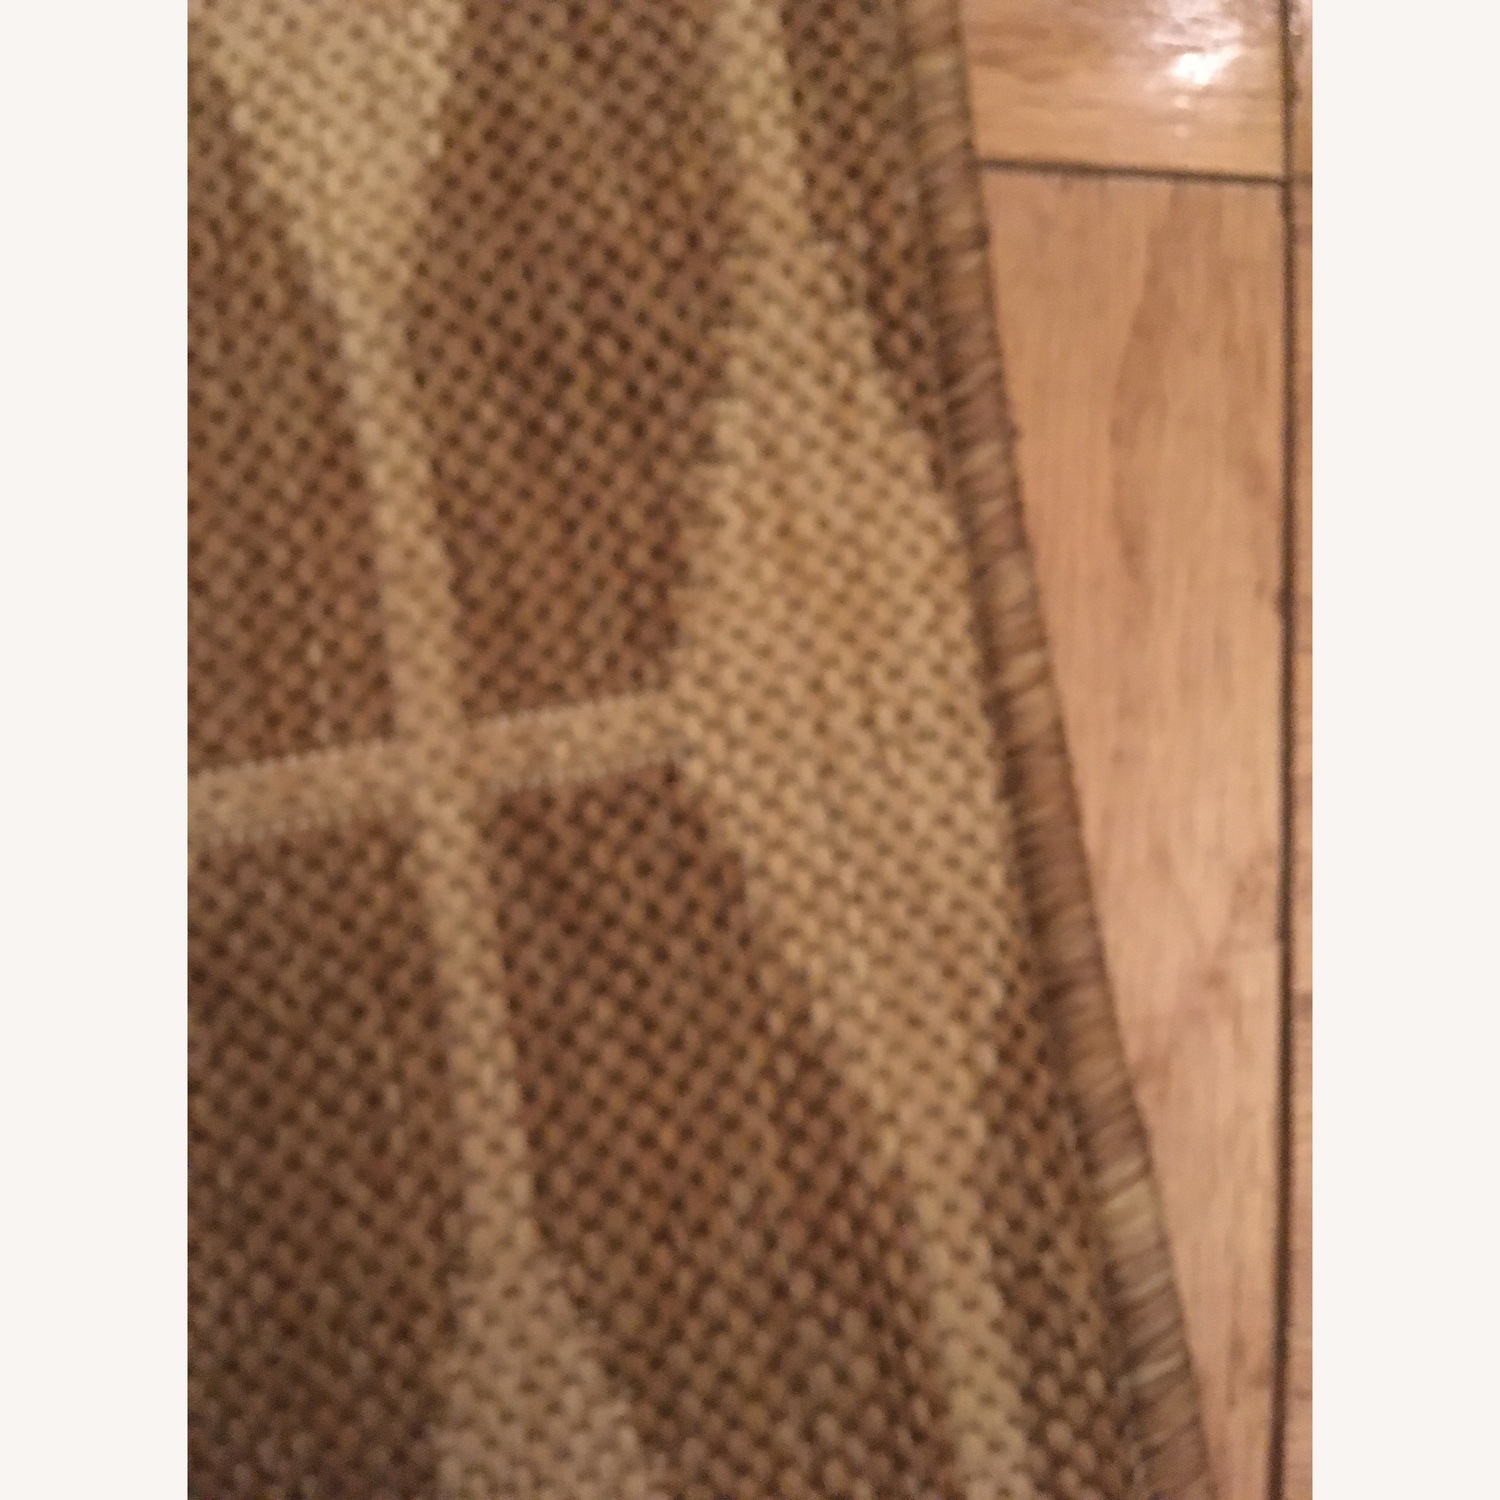 Crate & Barrel Aldo II Rug in Flax - image-3